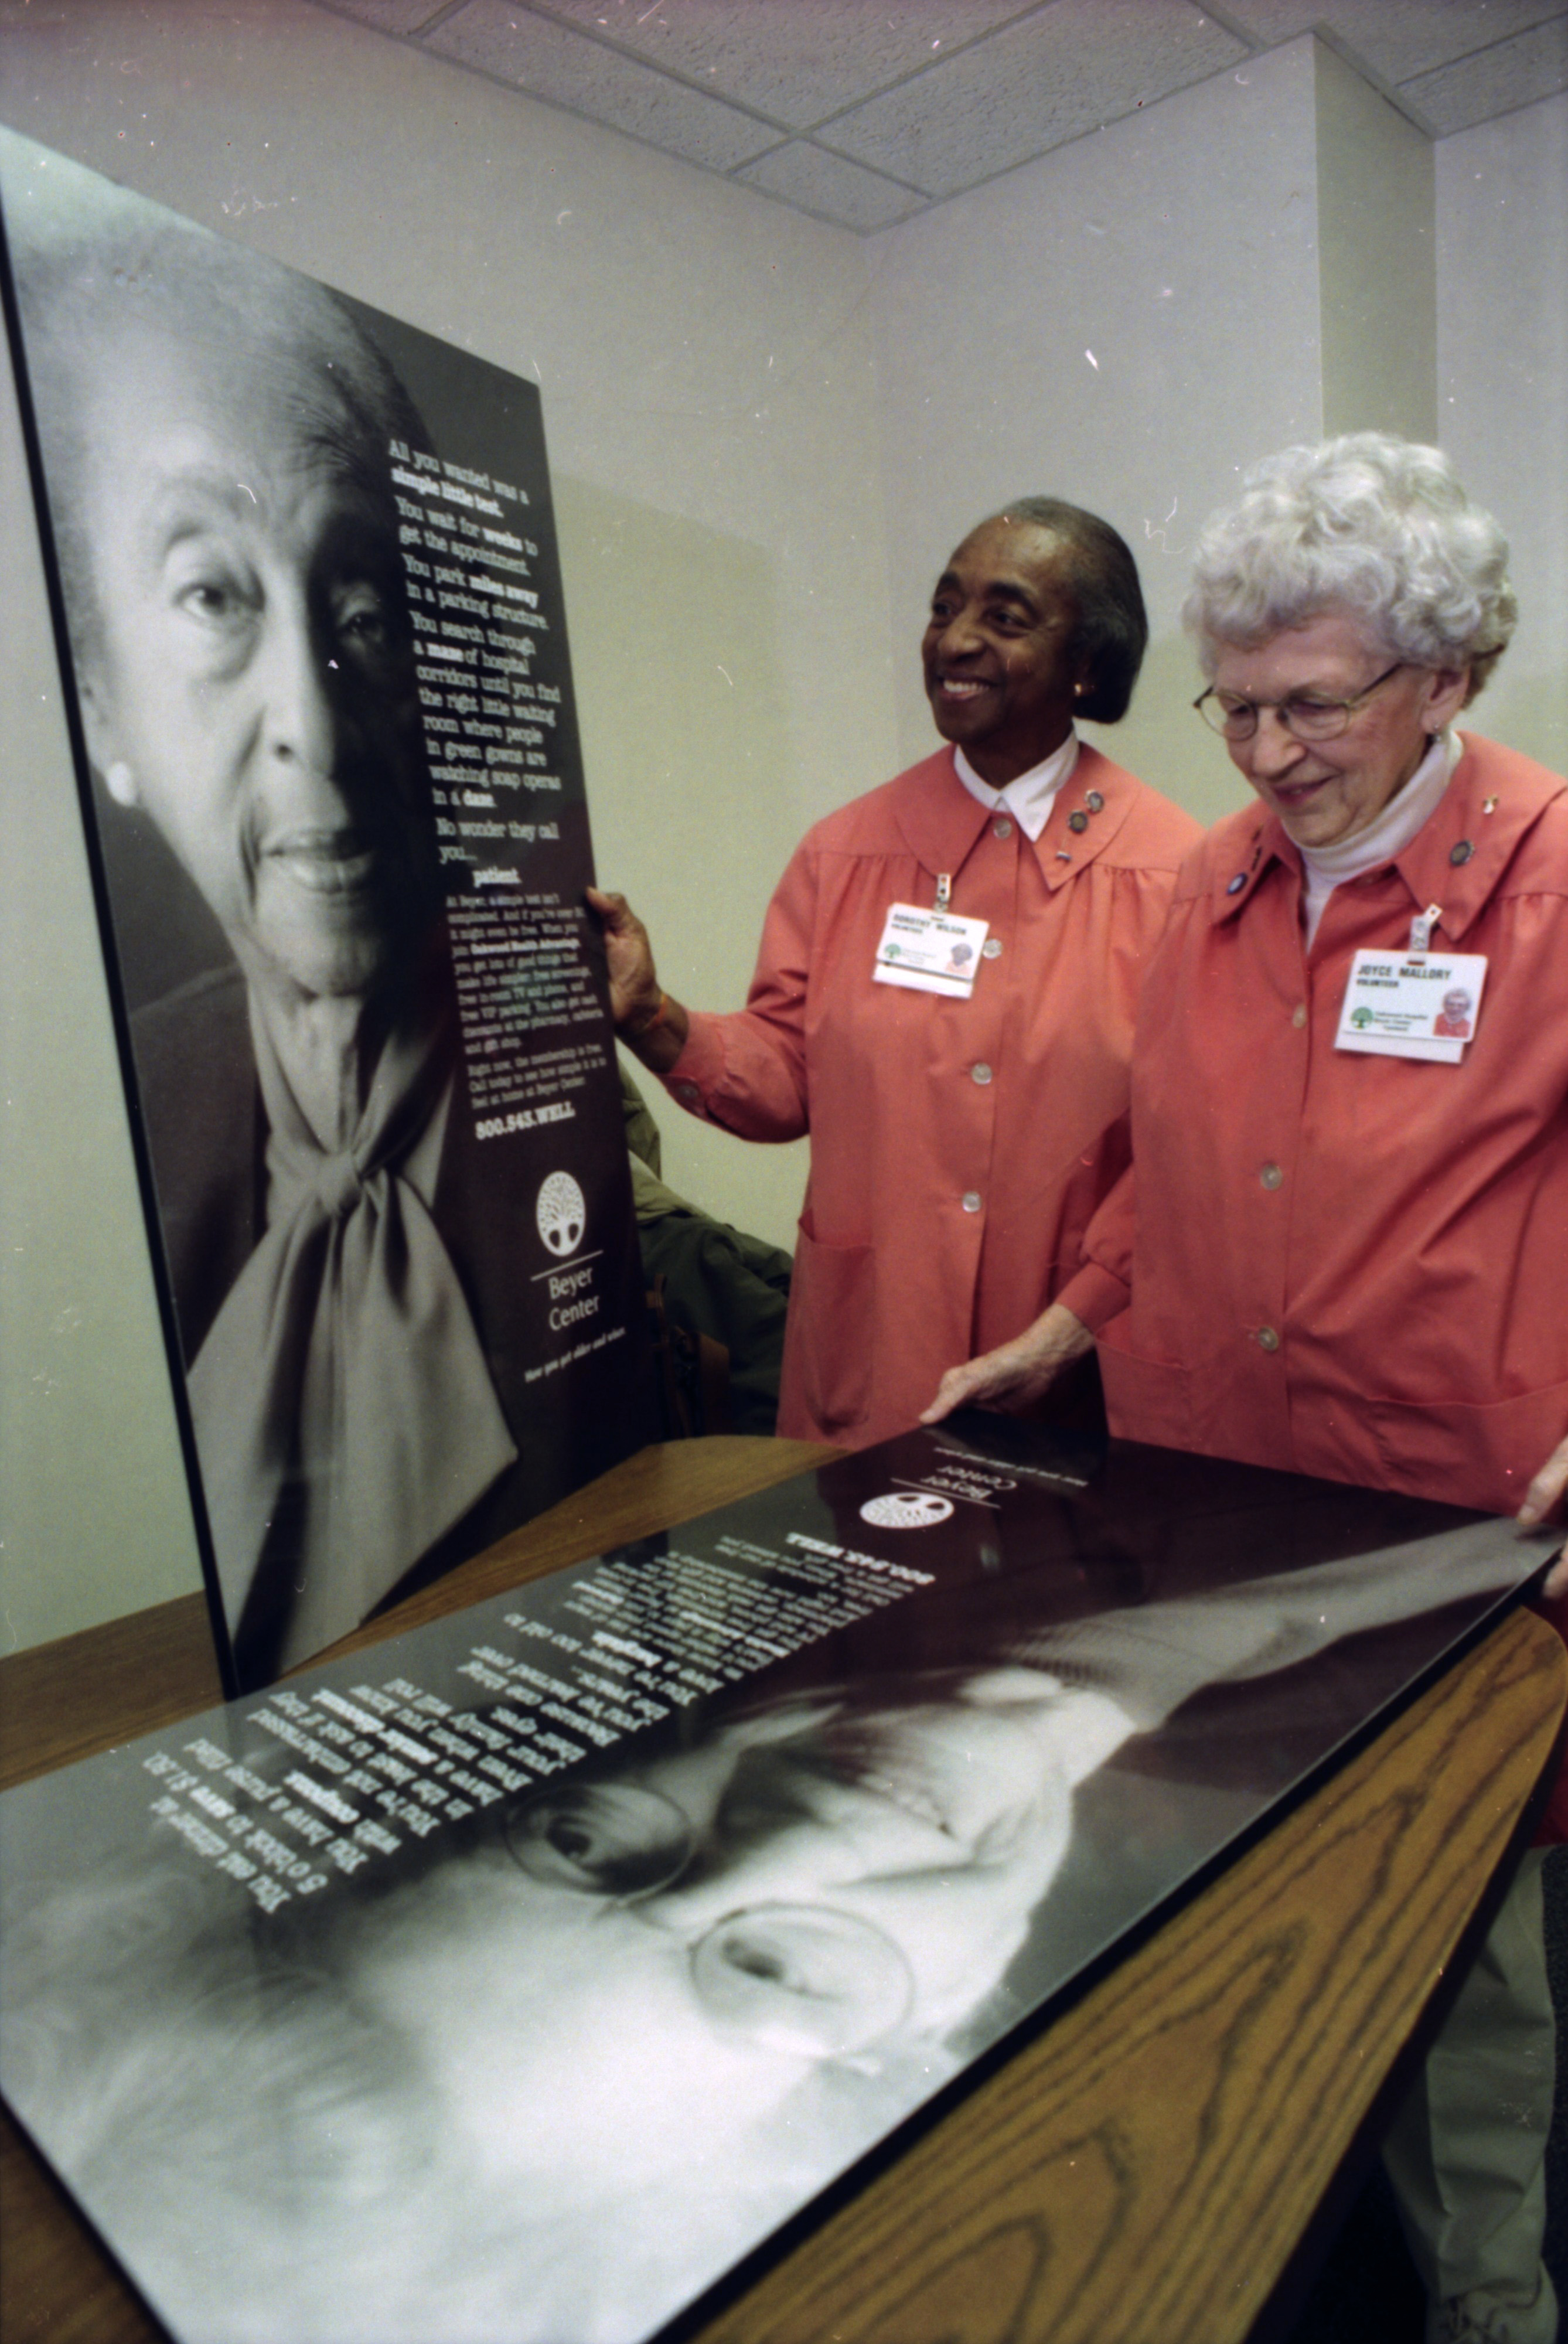 Volunteers Dorothy Wilson and Joyce Mallory Admire Ads for the Beyer Center, February 1999 image